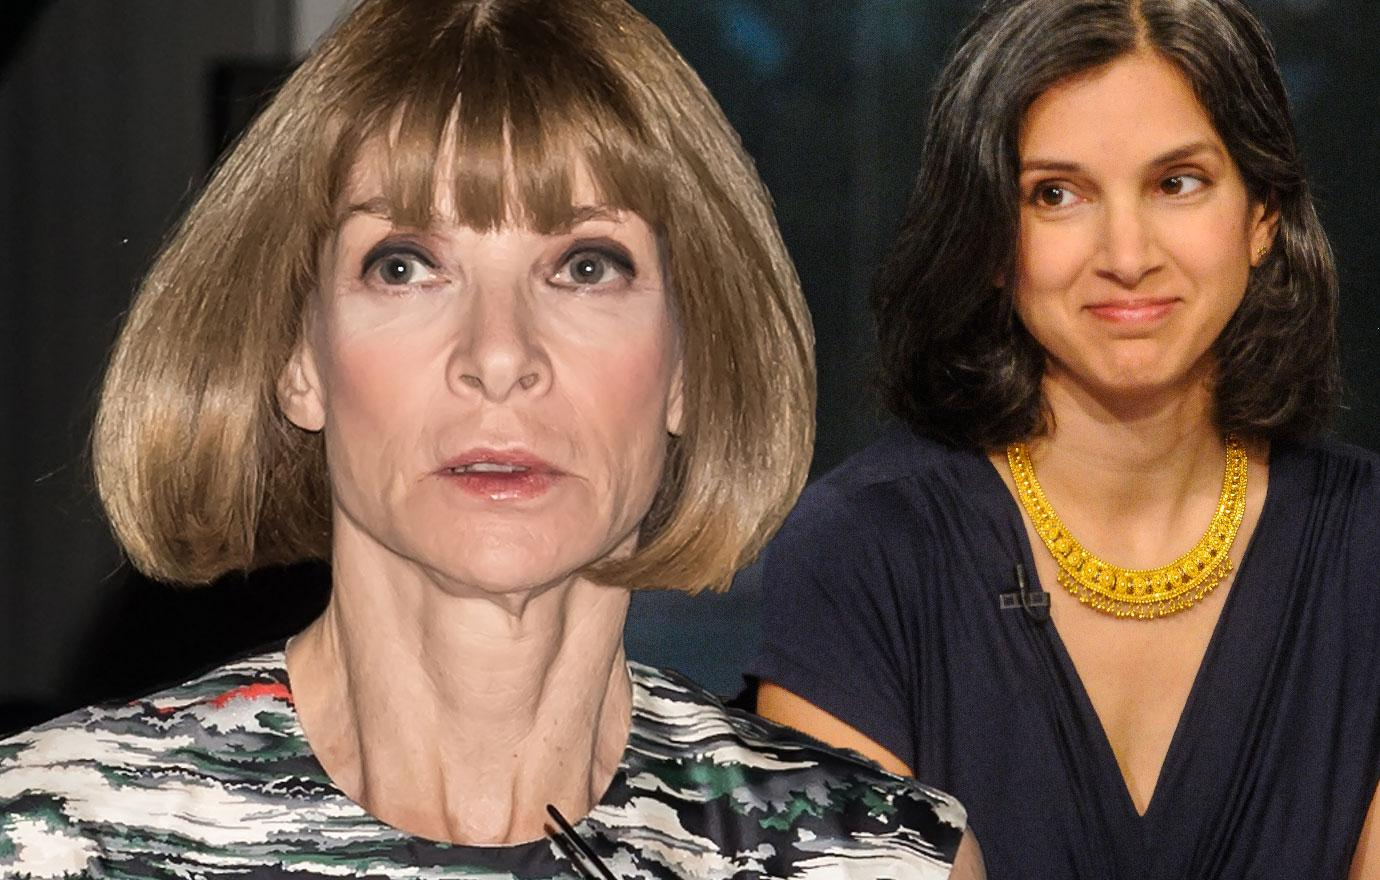 Anna Wintour Gives New Vanity Fair Editor Radhika Jones Fashion Stink Eye